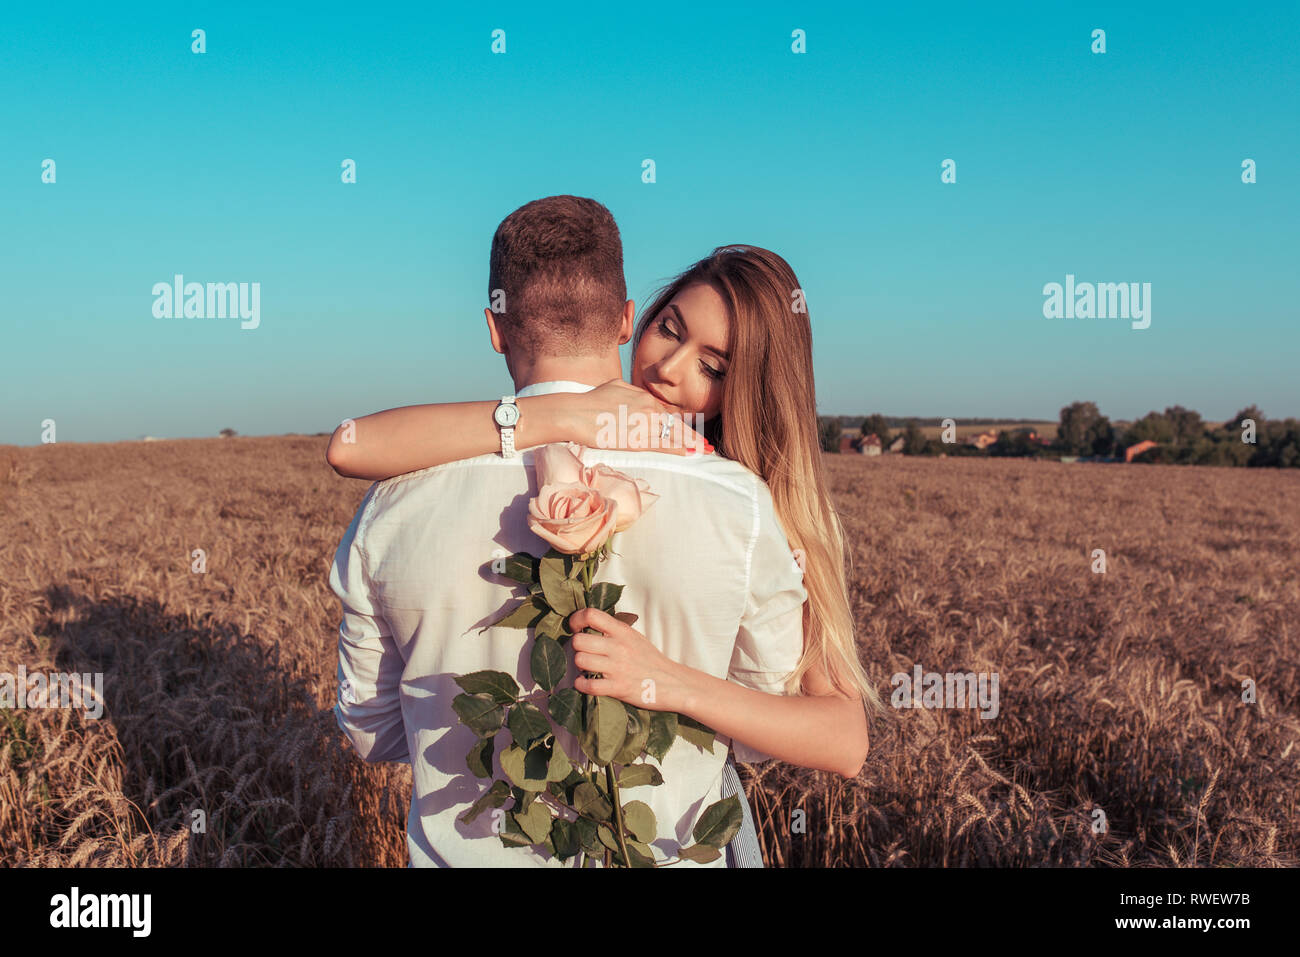 The girl in a dress, hugs man guy, with a bouquet of rose flowers. The concept of the gift, the unexpectedness of love and joy. Emotions of happiness - Stock Image